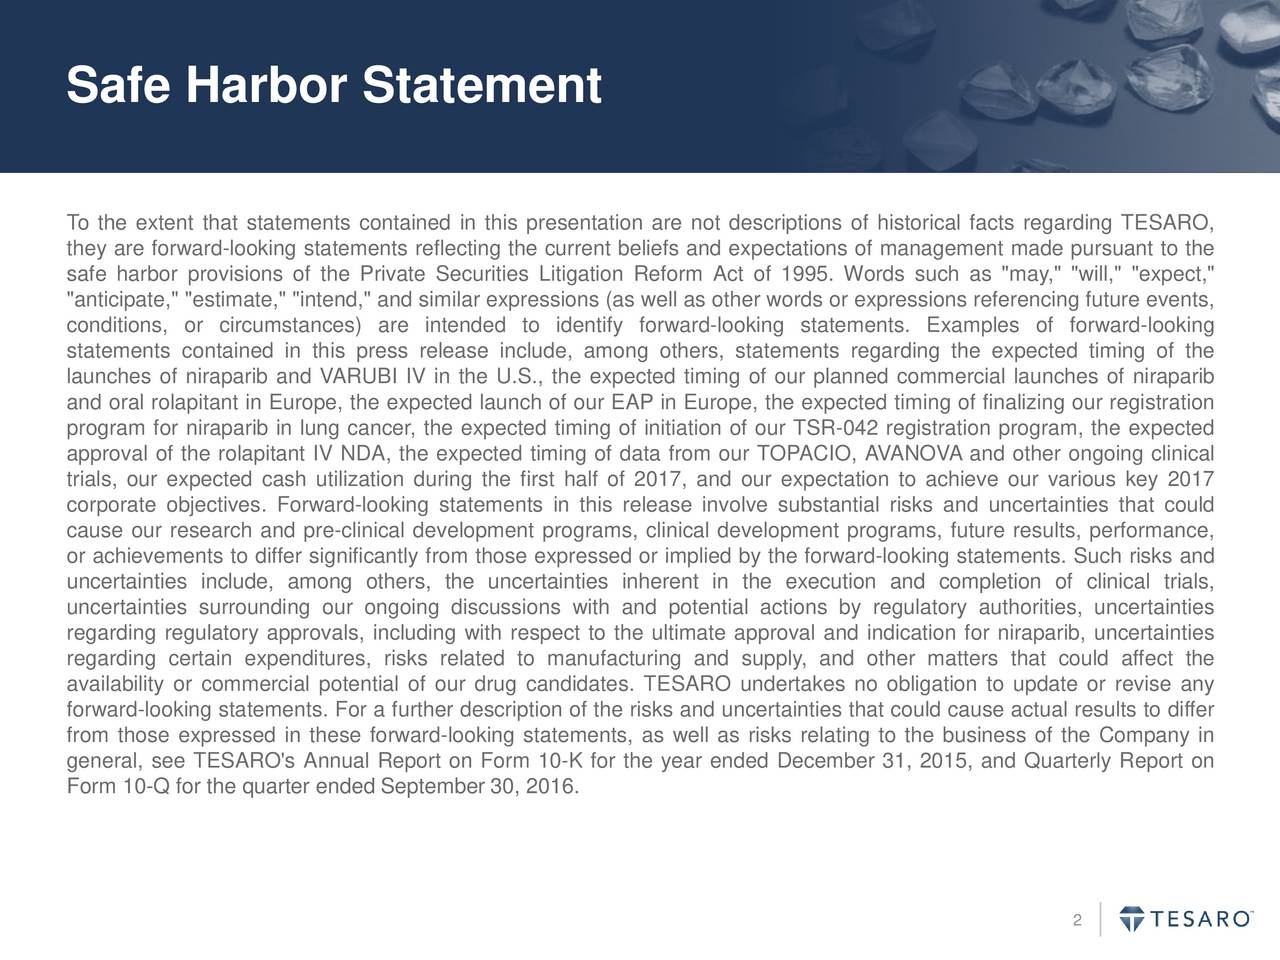 """To the extent that statements contained in this presentation are not descriptions of historical facts regarding TESARO, they are forward-looking statements reflecting the current beliefs and expectations of management made pursuant to the safe harbor provisions of the Private Securities Litigation Reform Act of 1995. Words such as """"may,"""" """"will,"""" """"expect,"""" """"anticipate,"""" """"estimate,"""" """"intend,"""" and similar expressions (as well as other words or expressions referencing future events, conditions, or circumstances) are intended to identify forward-looking statements. Examples of forward-looking statements contained in this press release include, among others, statements regarding the expected timing of the launches of niraparib and VARUBI IV in the U.S., the expected timing of our planned commercial launches of niraparib and oral rolapitant in Europe, the expected launch of our EAP in Europe, the expected timing of finalizing our registration program for niraparib in lung cancer, the expected timing of initiation of our TSR-042 registration program, the expected approval of the rolapitant IV NDA, the expected timing of data from our TOPACIO, AVANOVA and other ongoing clinical trials, our expected cash utilization during the first half of 2017, and our expectation to achieve our various key 2017 corporate objectives. Forward-looking statements in this release involve substantial risks and uncertainties that could cause our research and pre-clinical development programs, clinical development programs, future results, performance, or achievements to differ significantly from those expressed or implied by the forward-looking statements. Such risks and uncertainties include, among others, the uncertainties inherent in the execution and completion of clinical trials, uncertainties surrounding our ongoing discussions with and potential actions by regulatory authorities, uncertainties regarding regulatory approvals, including with respect to the ultimate approval and indication fo"""